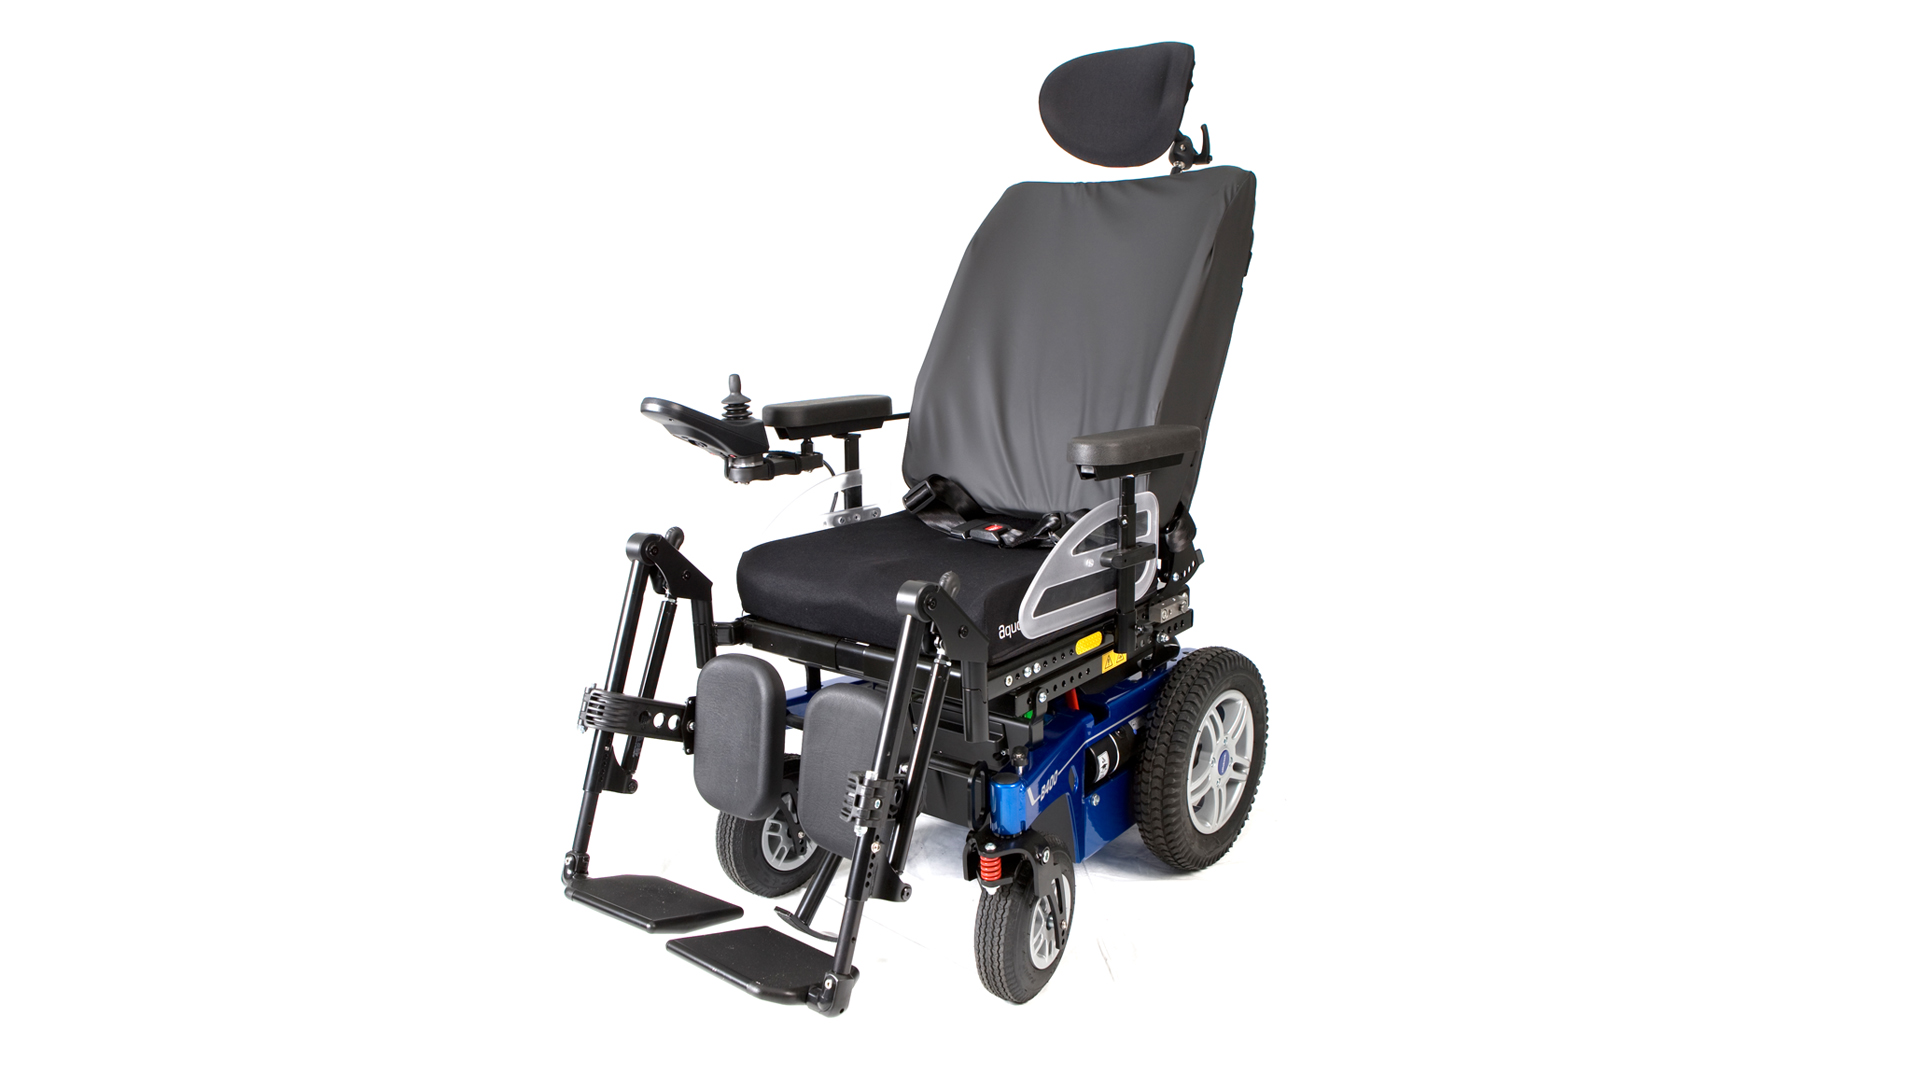 Ottobock launches new power wheelchair for people living with MND